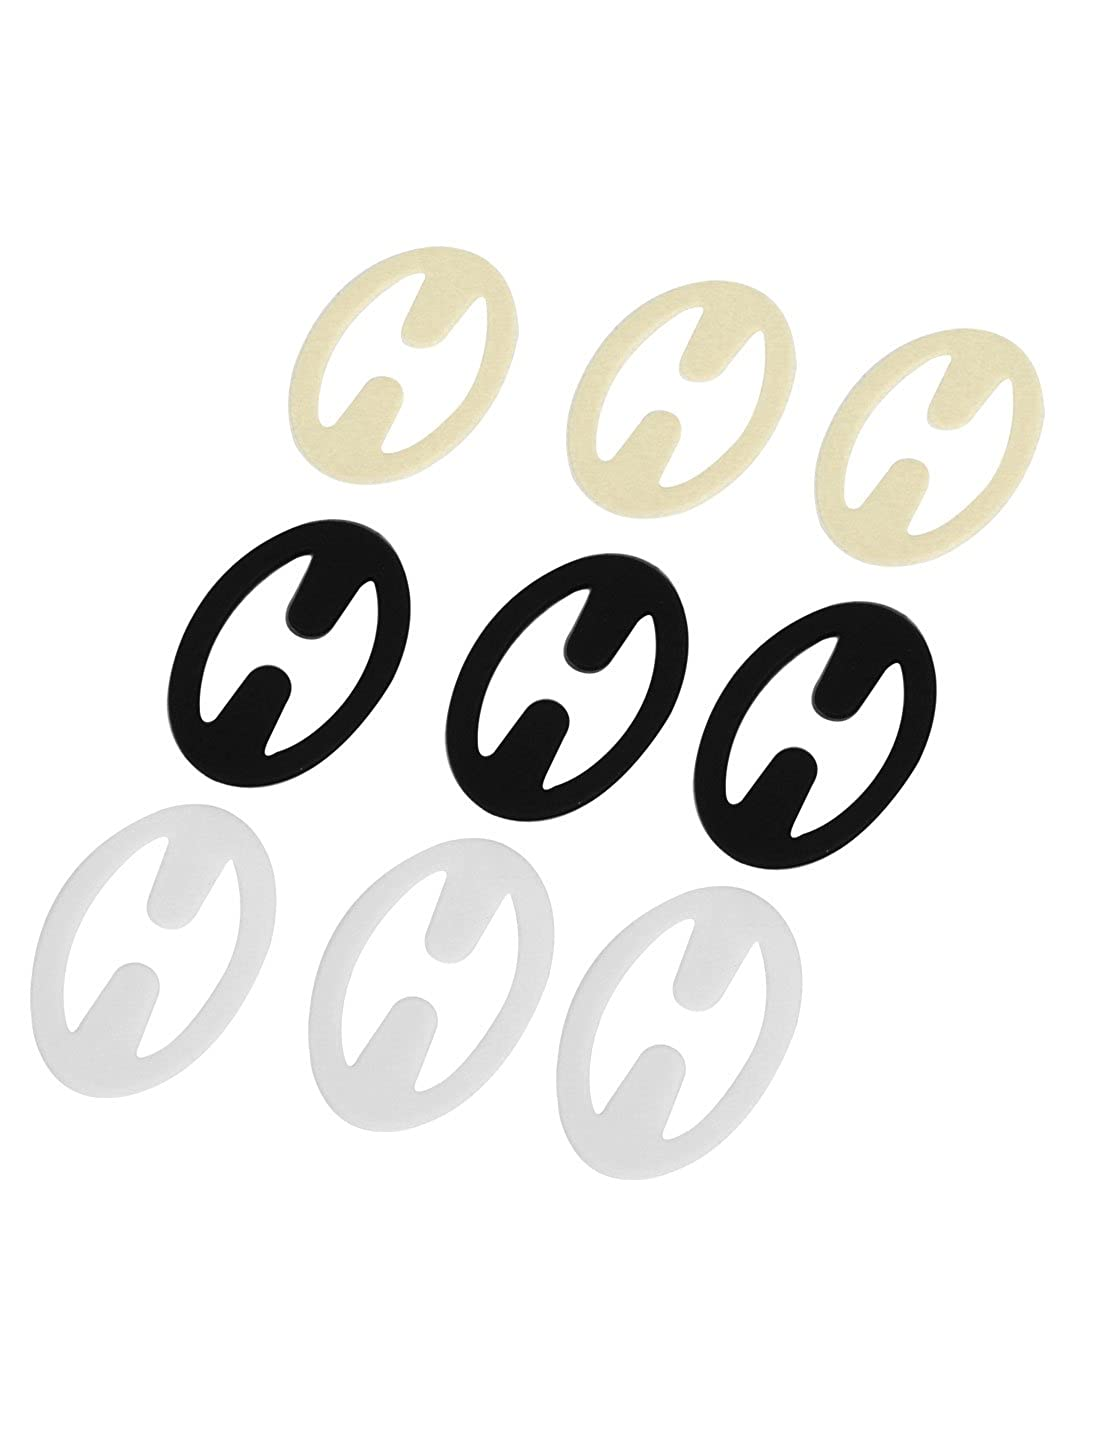 uxcell Round Cleavage Control Clips Hide Adjust Bra Strap Buckle 9PCS a15033100ux0070